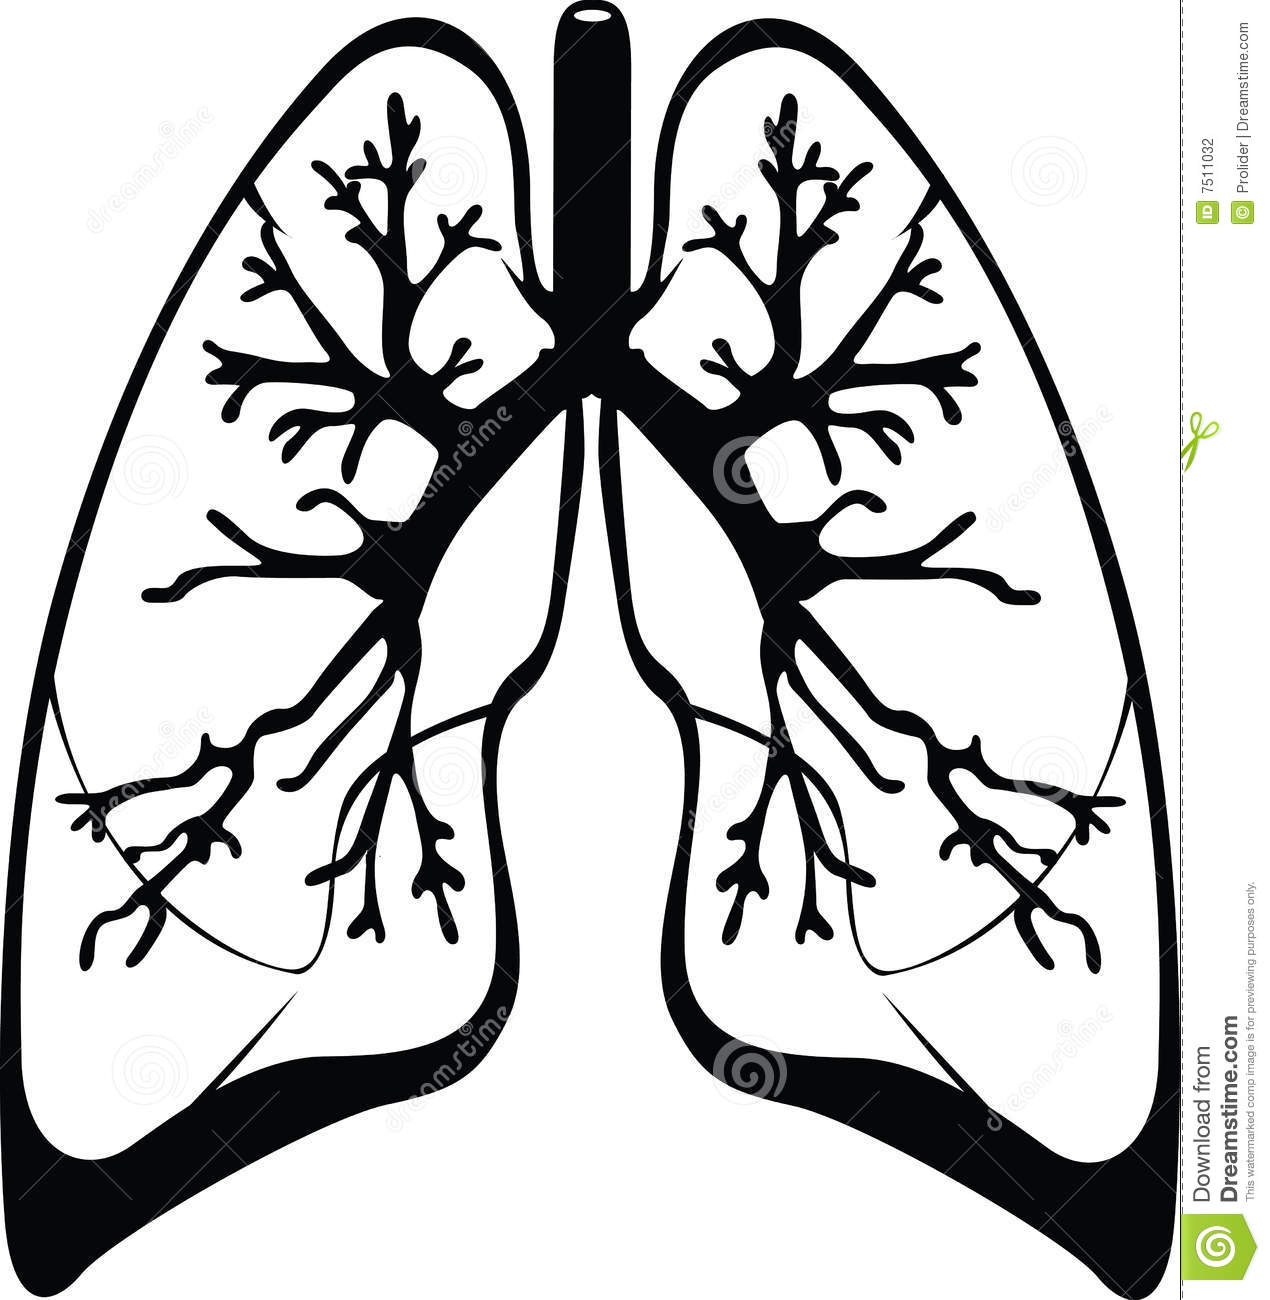 Lung Clipart Black And White.